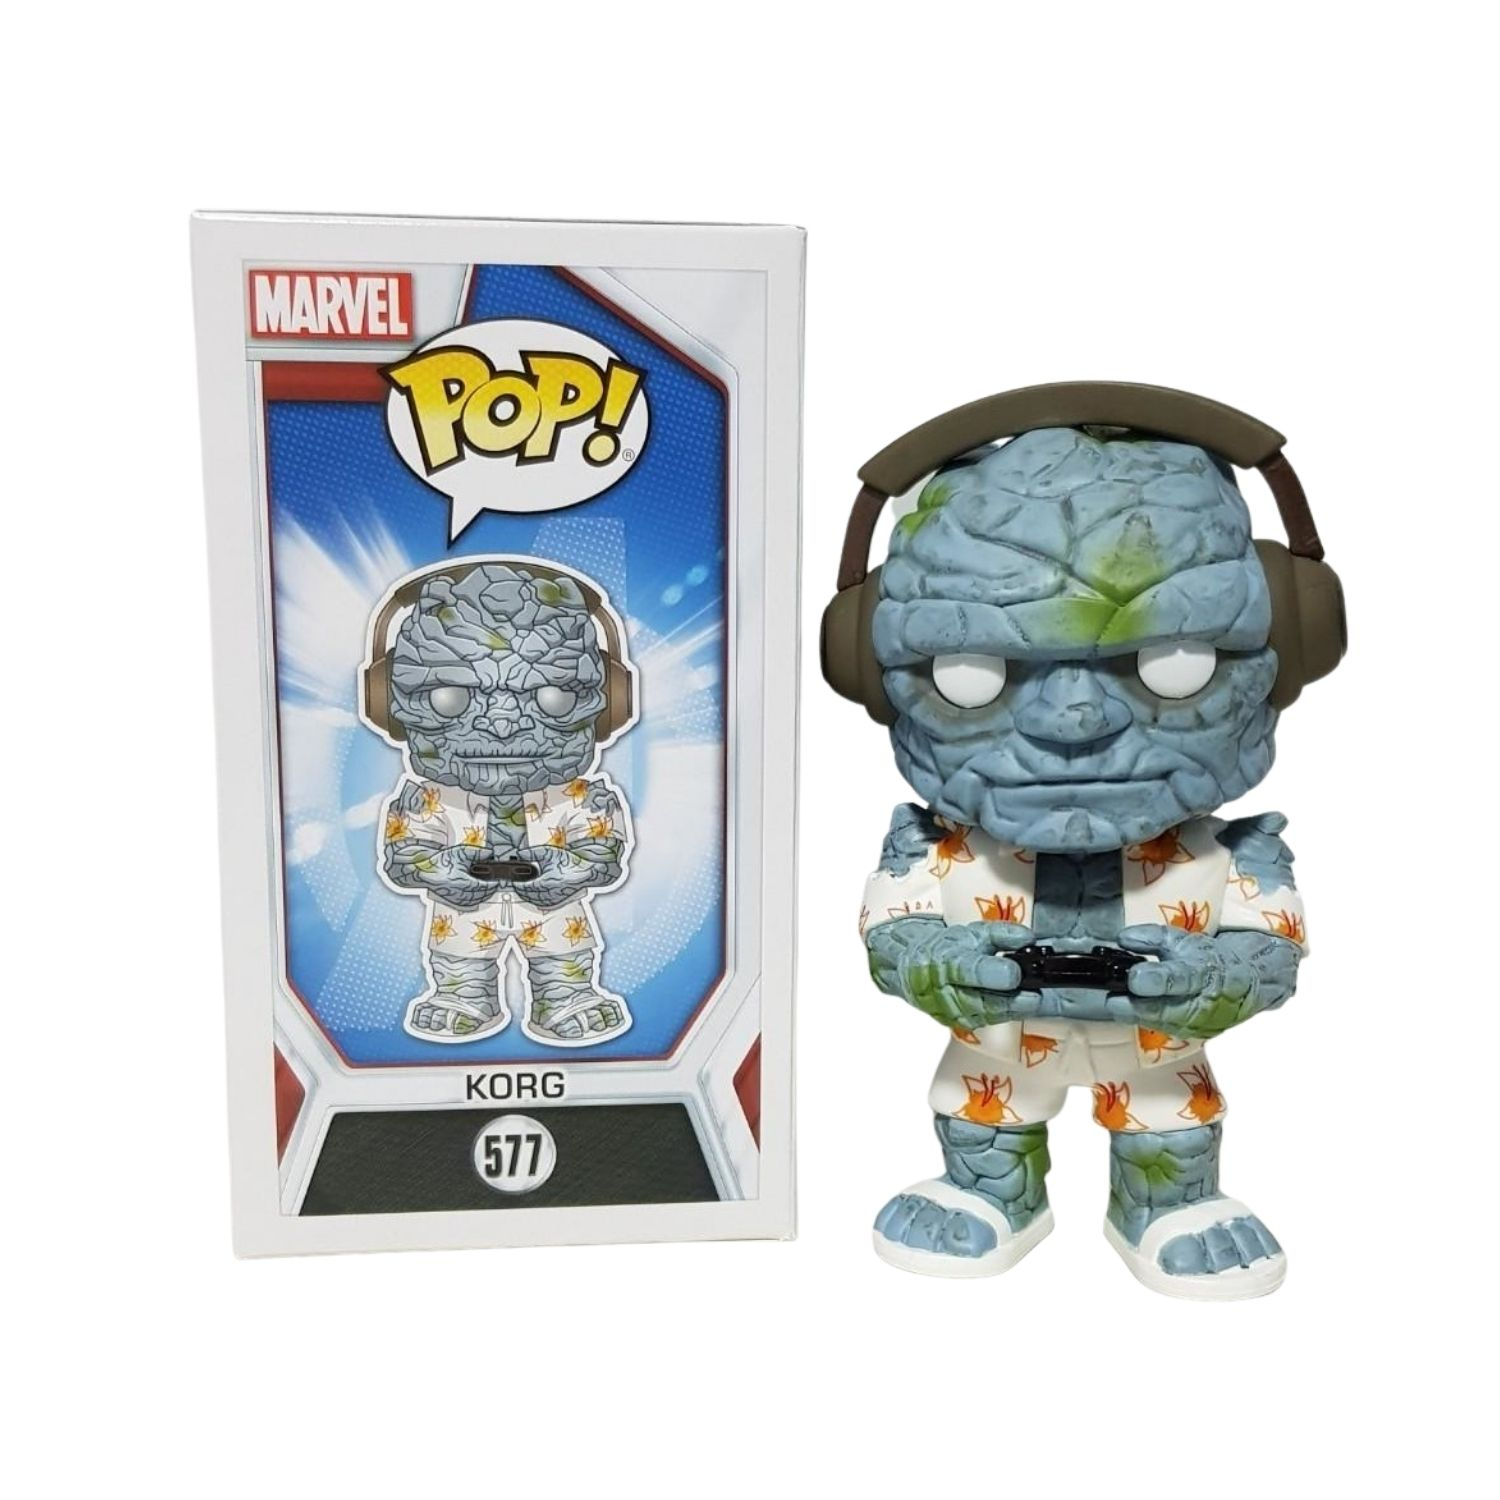 Funko Pop Korg #577 Marvel Avengers Endgame  - Game Land Brinquedos